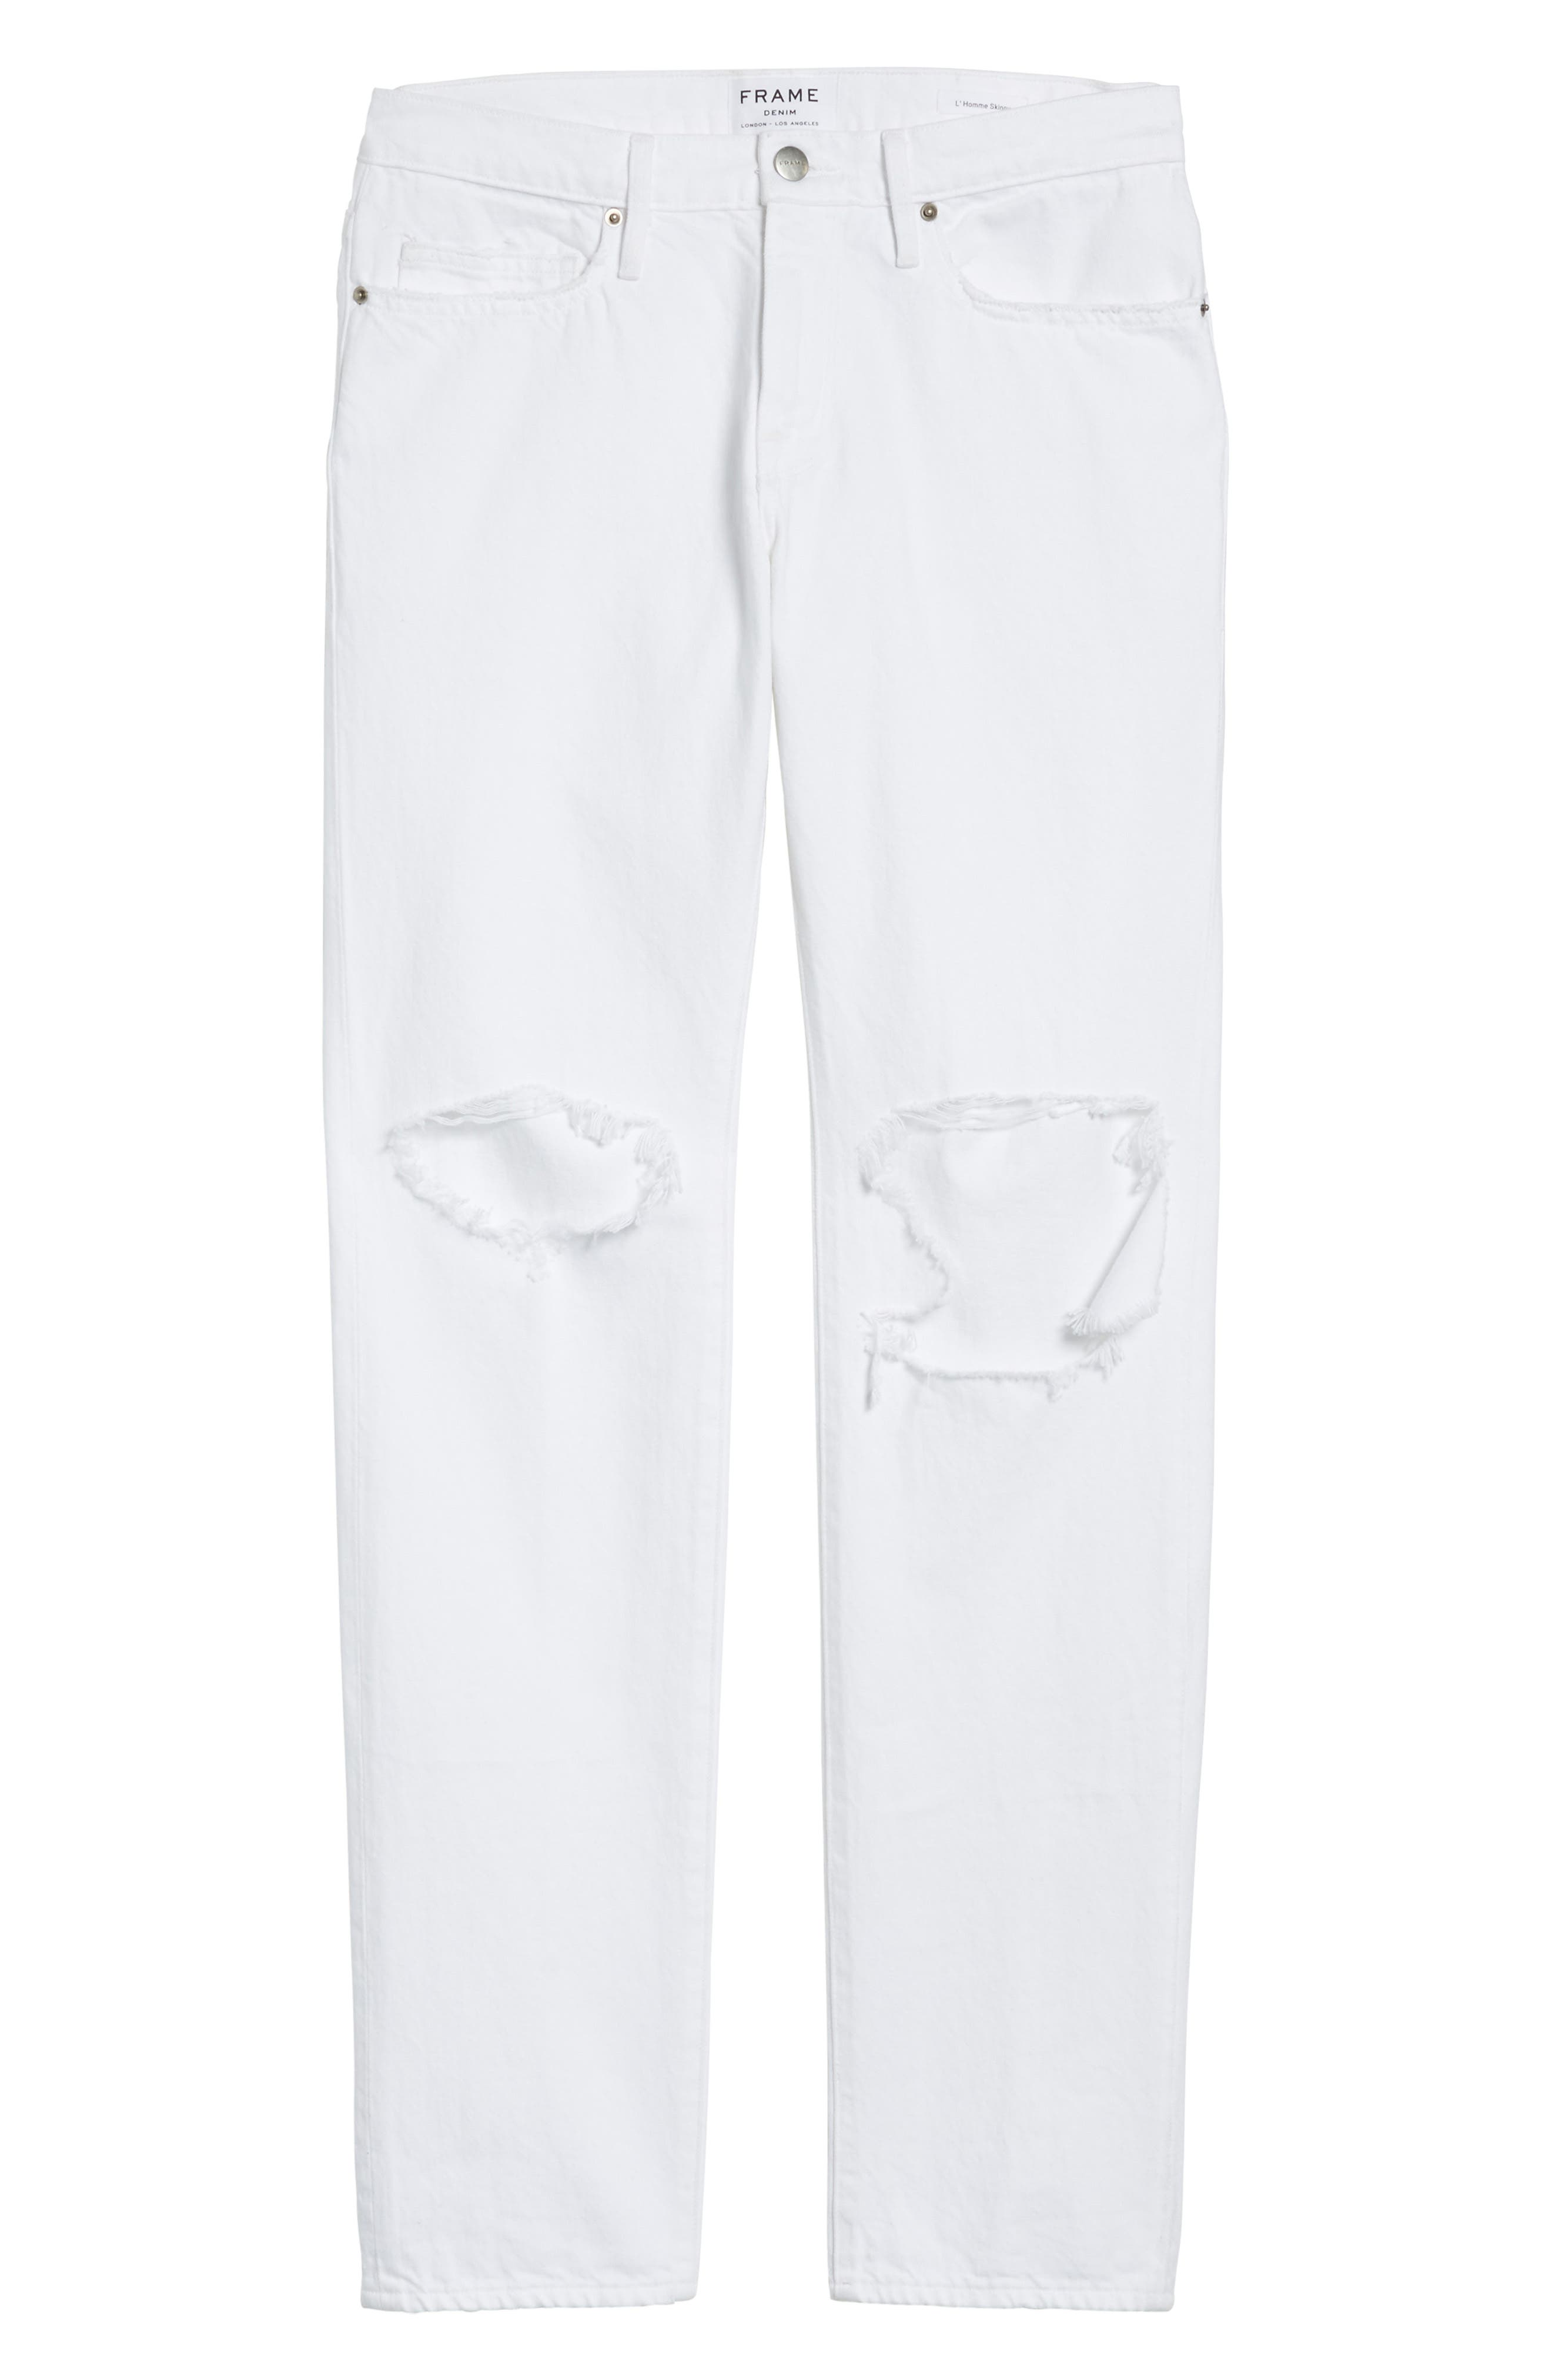 L'Homme Skinny Fit Jeans,                             Alternate thumbnail 6, color,                             WHITE OUT